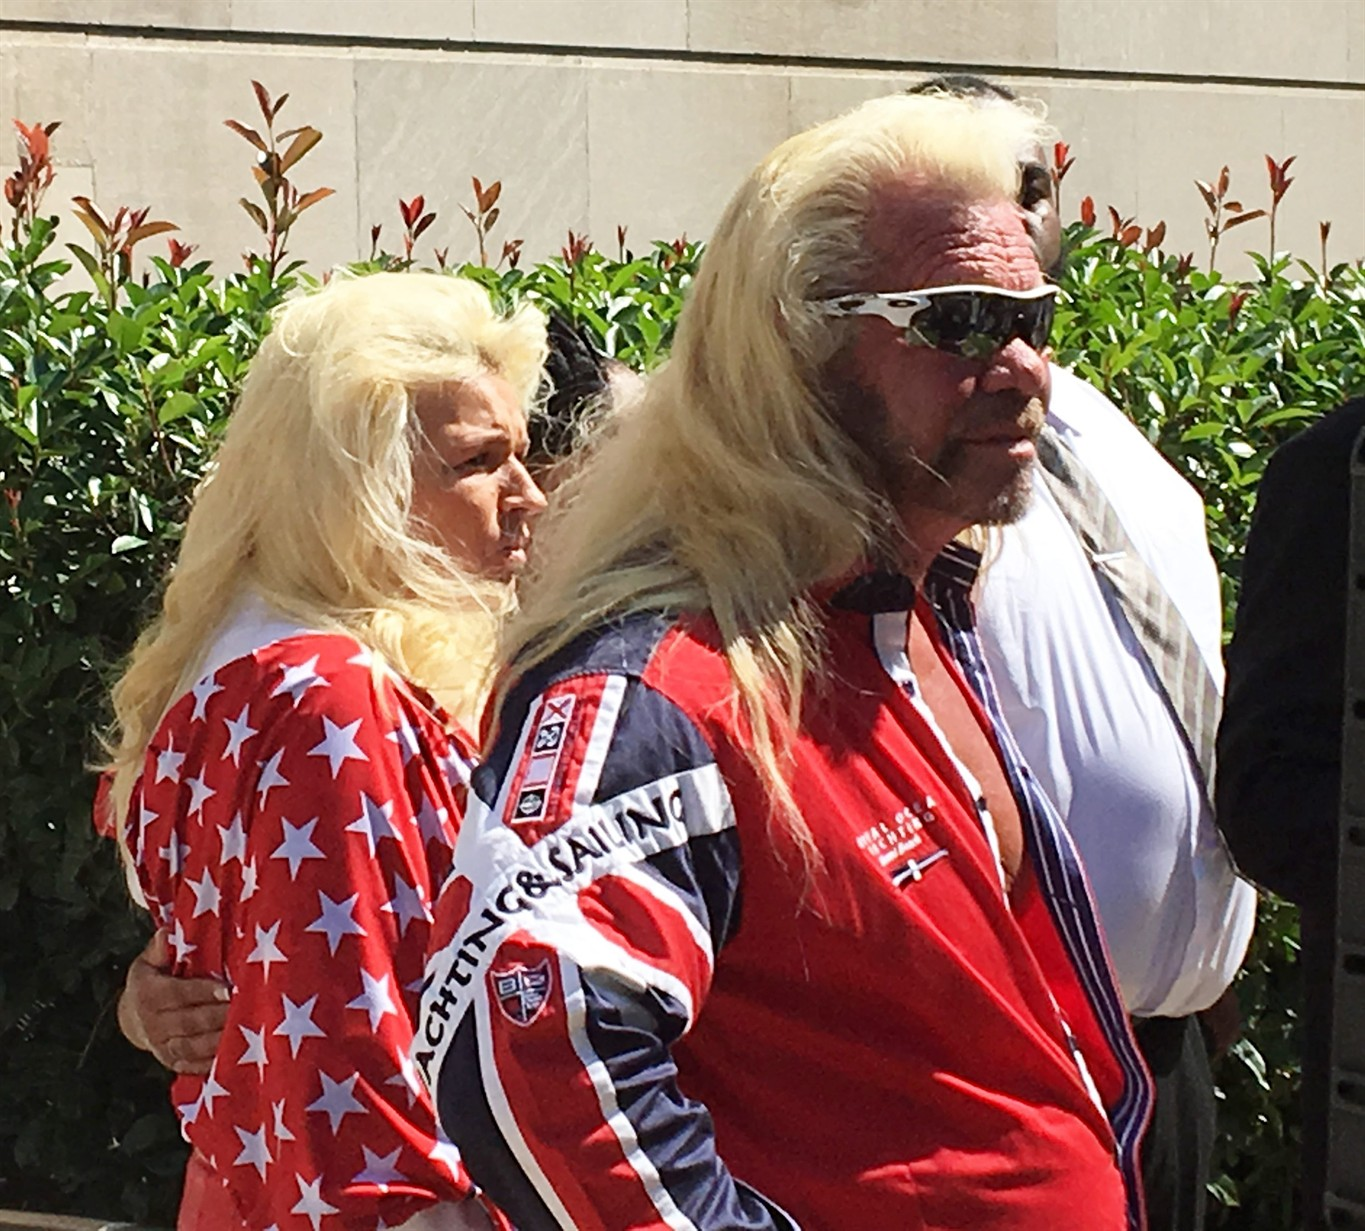 Dog the Bounty Hunter joins legal fight against bail reform